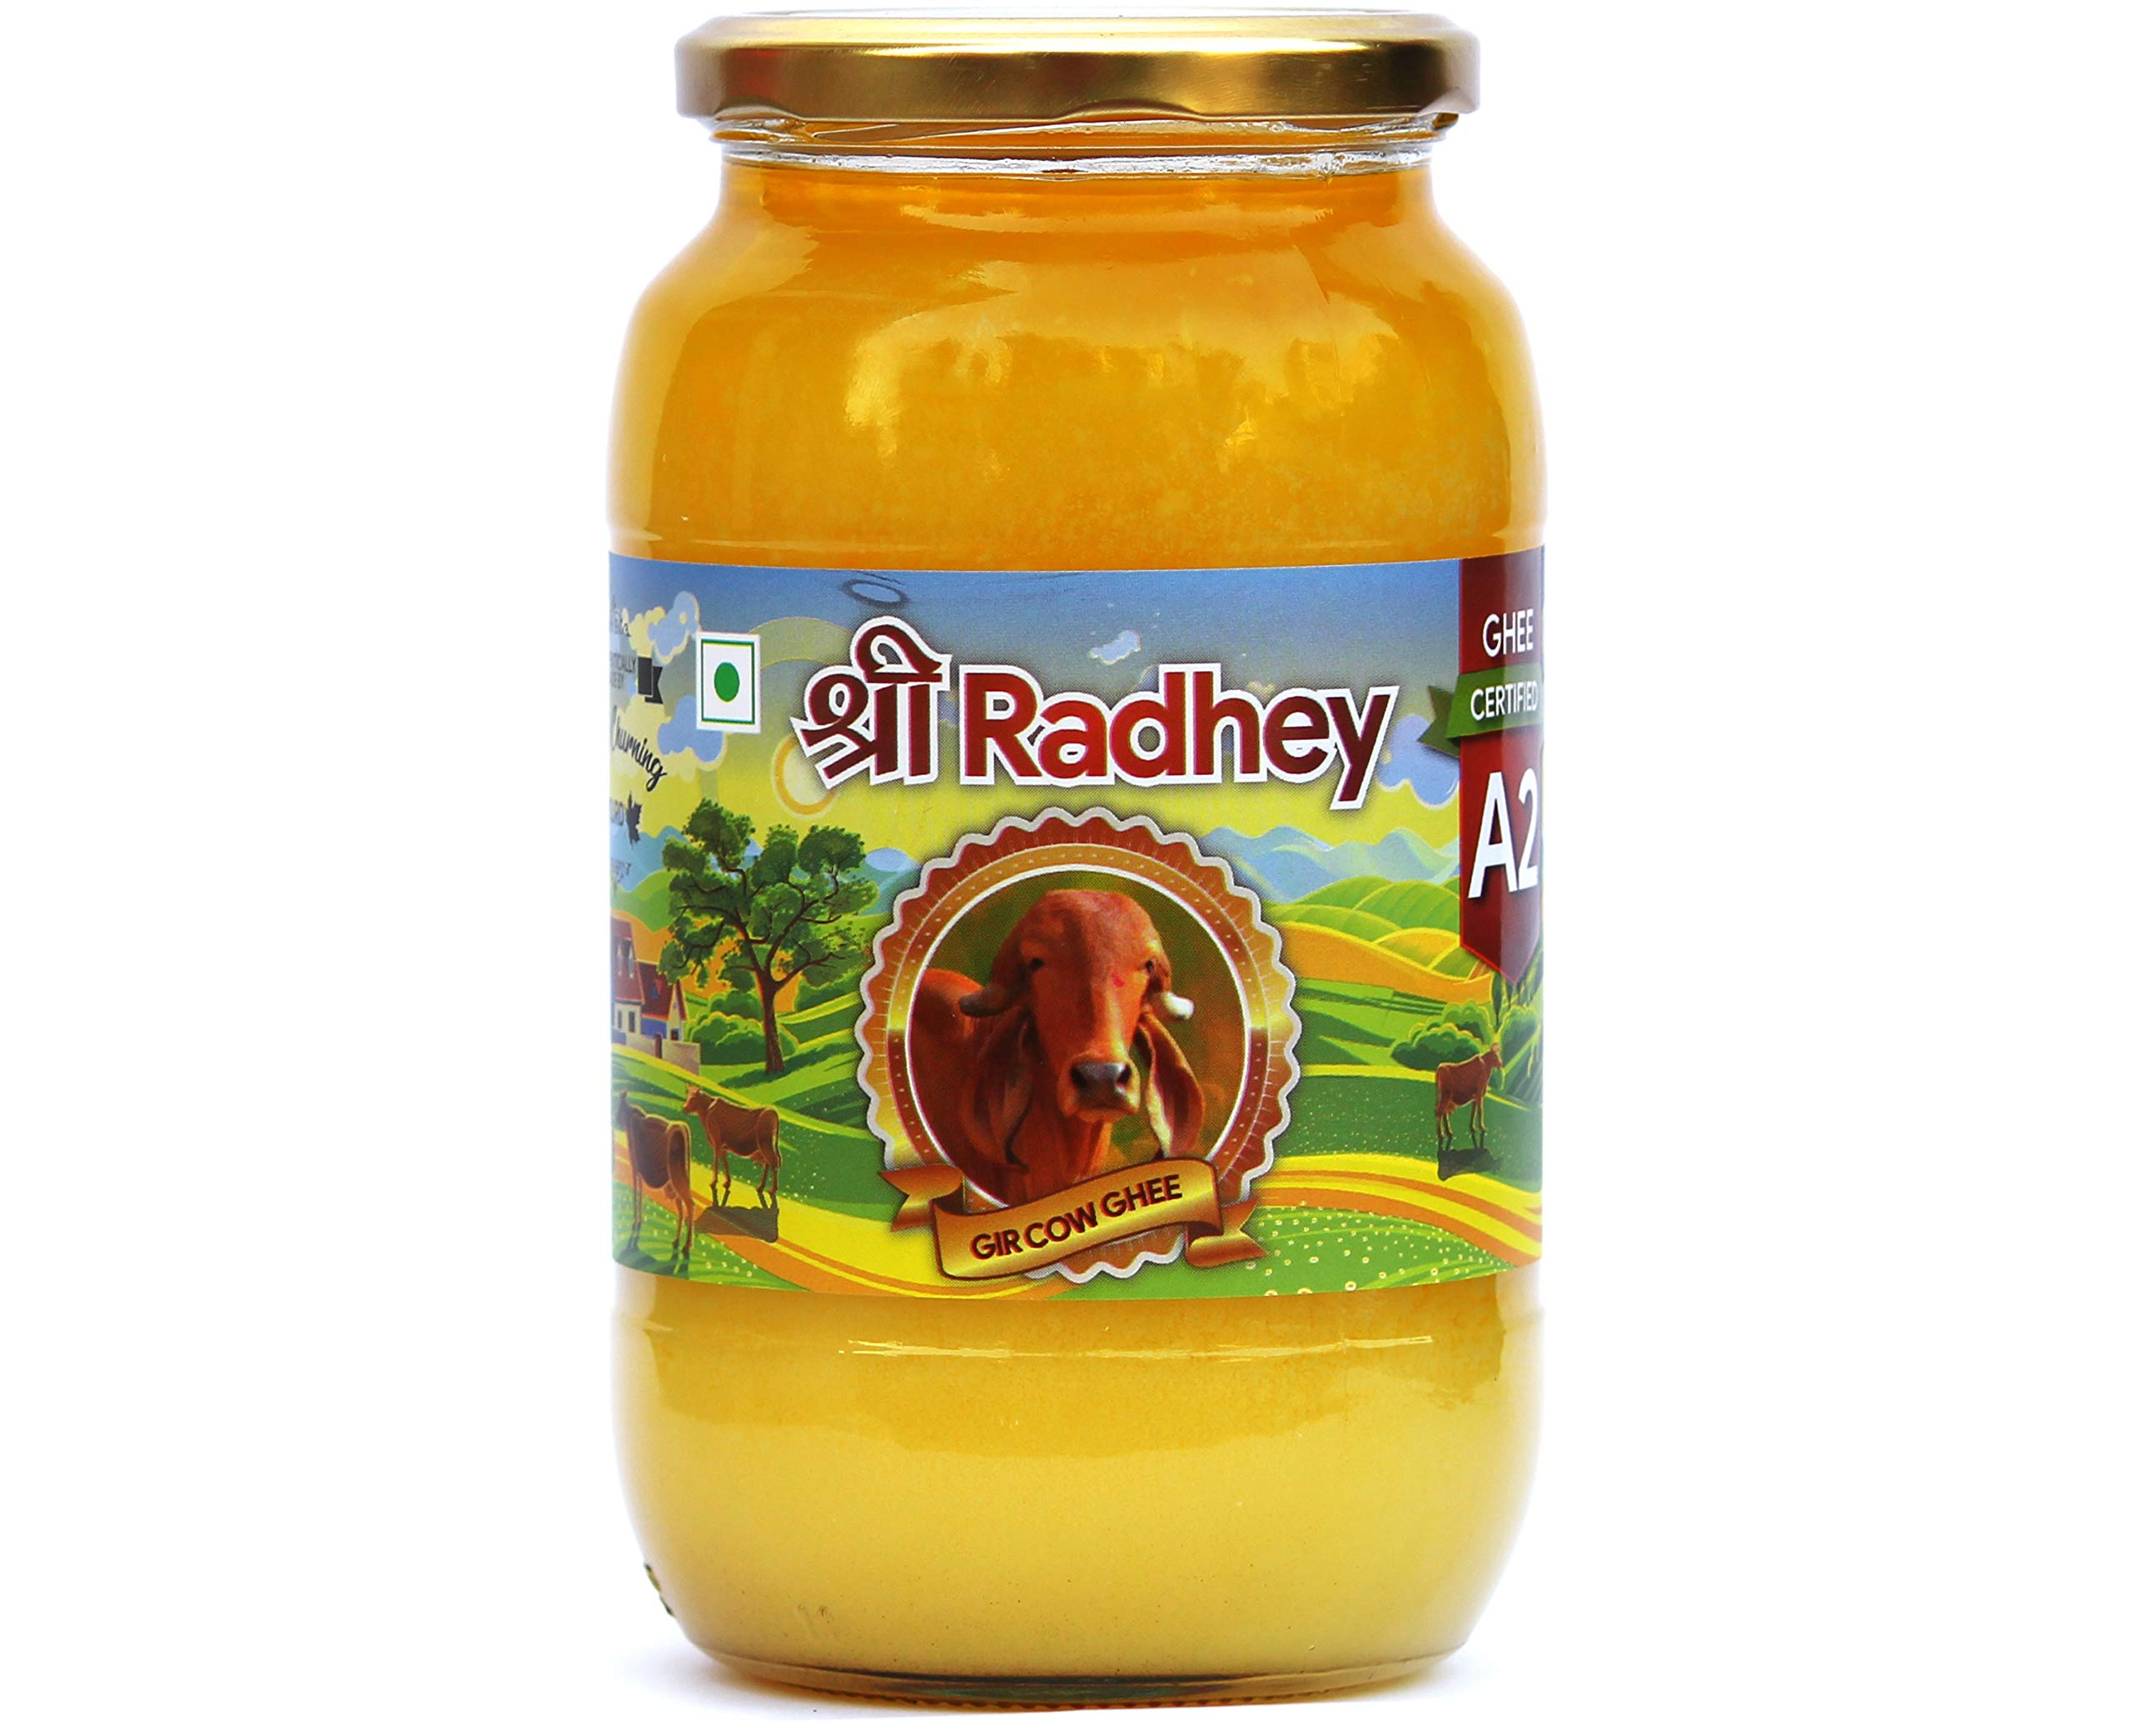 Shree Radhey Certified A2 Gir Cow Ghee - Gluten Free - (Traditionaly Hand Churned) 1000 ml